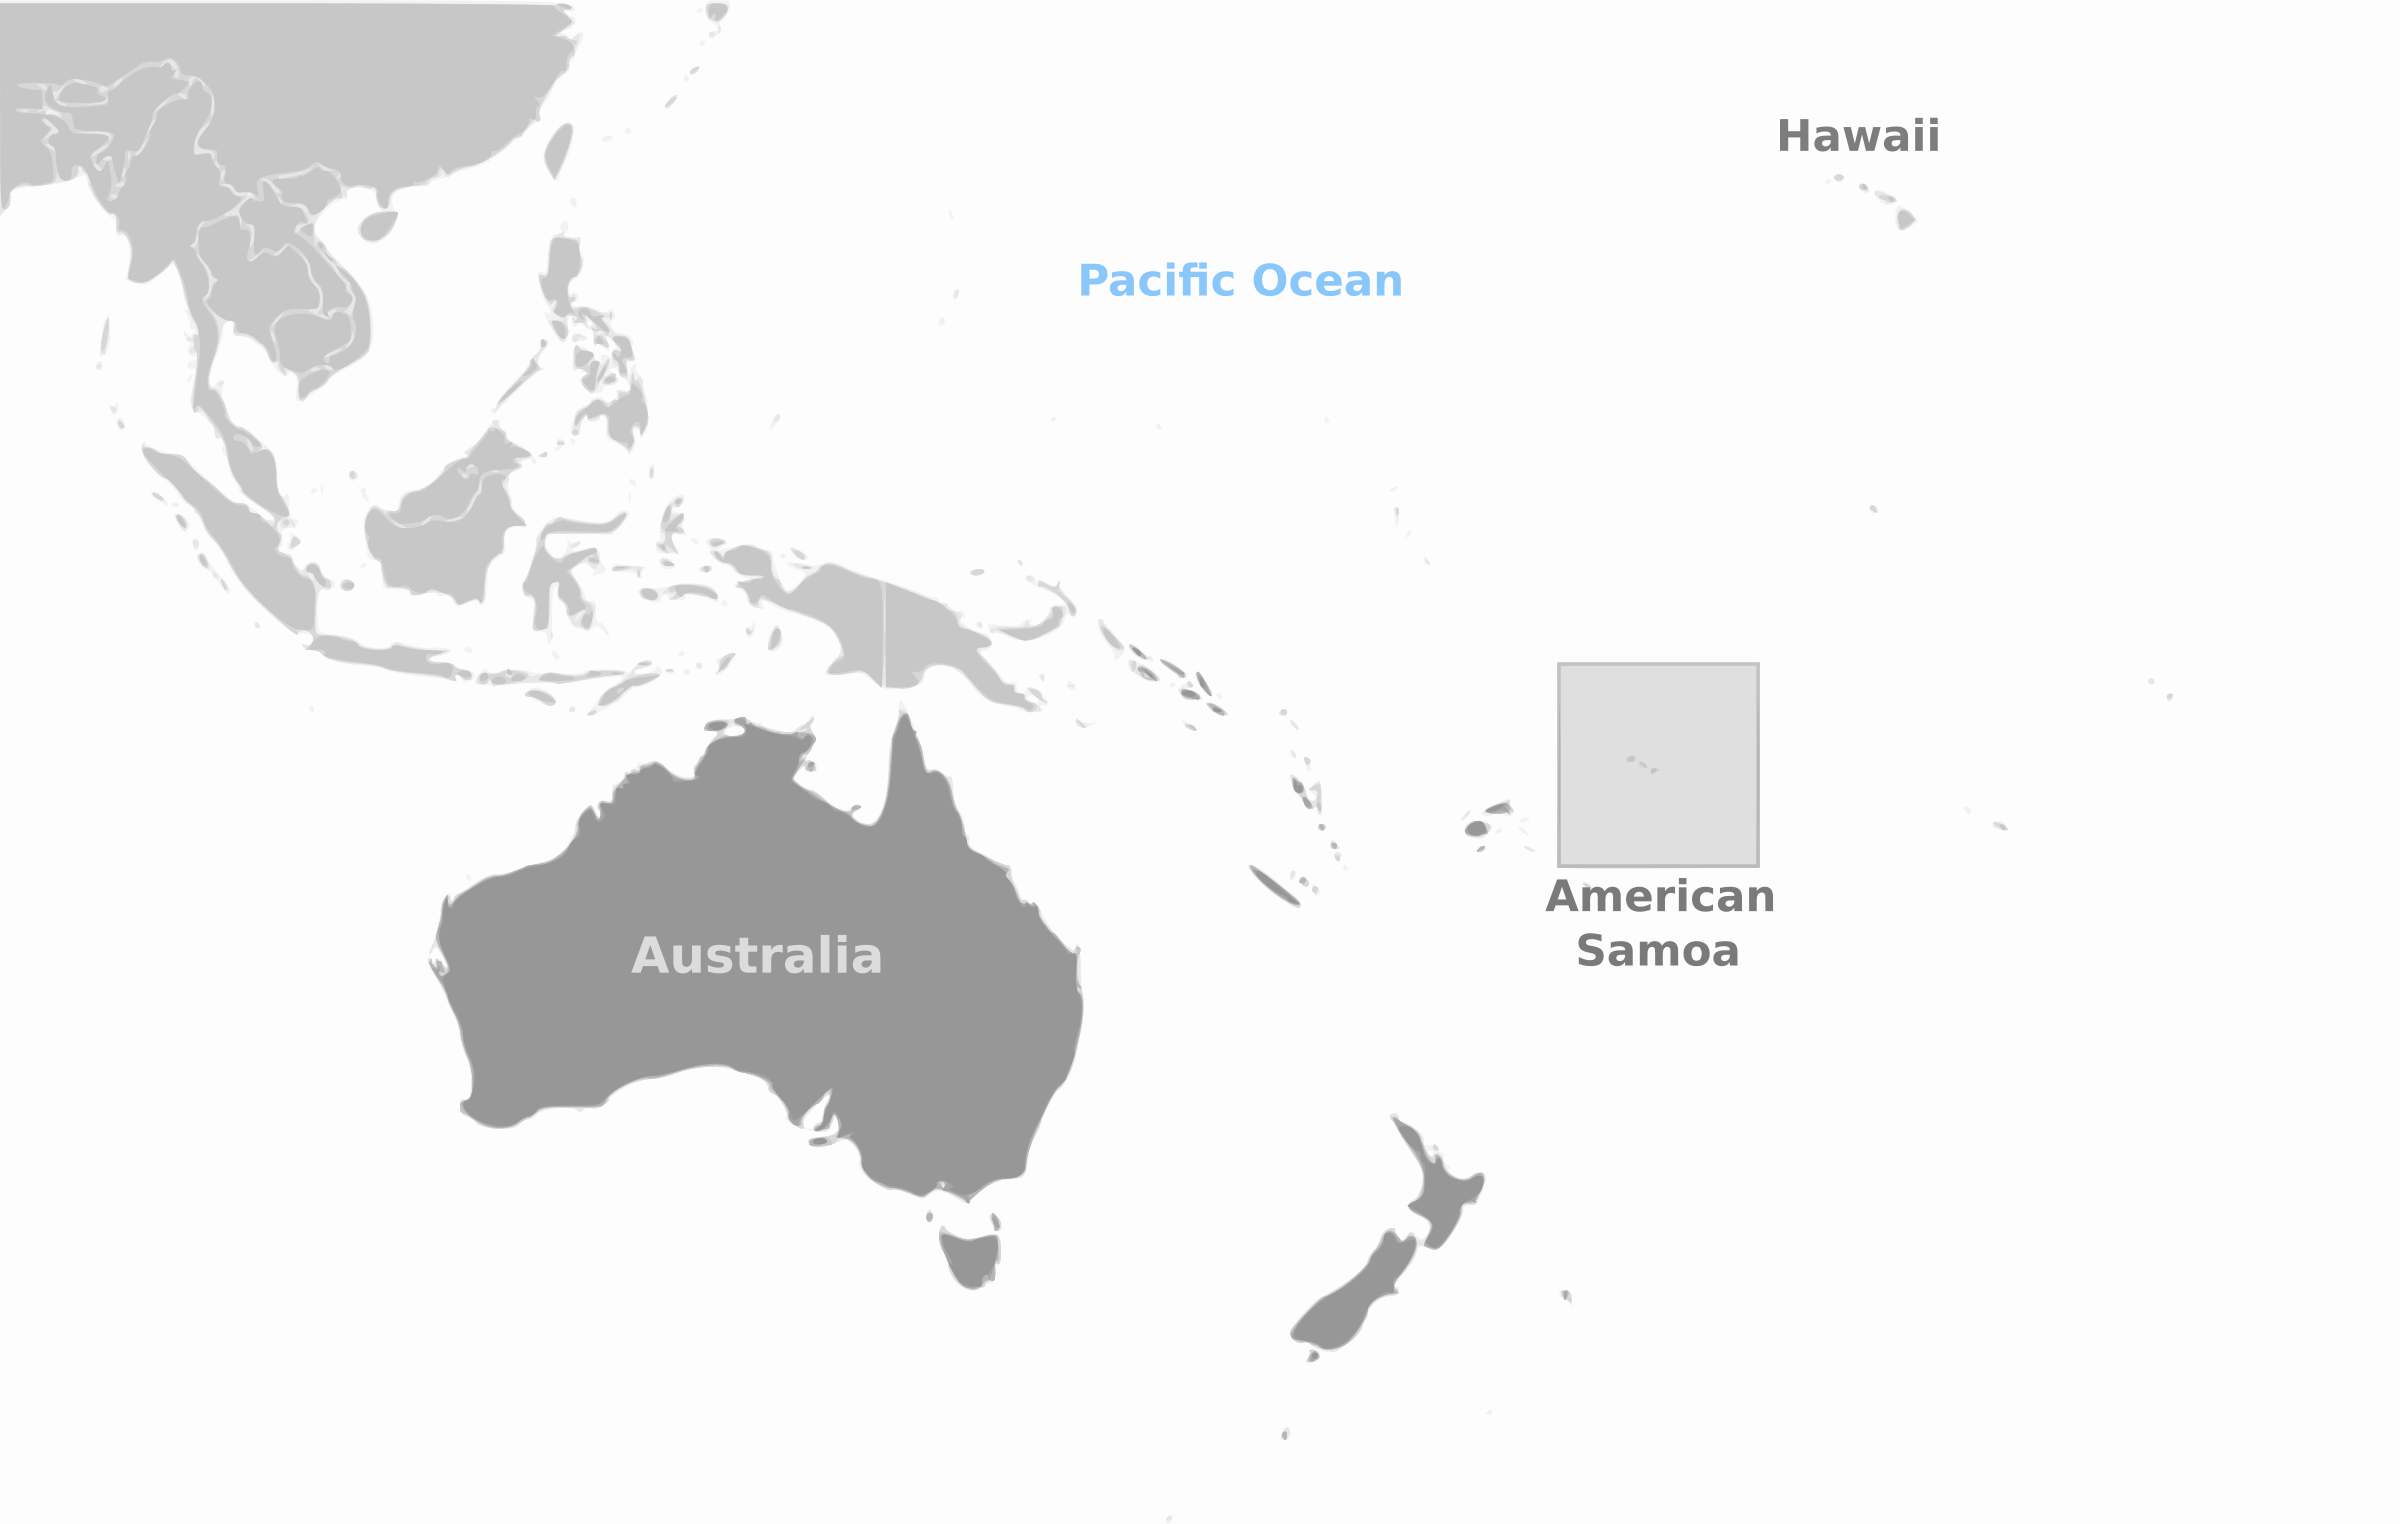 American Samoa location labeled by wpclipart